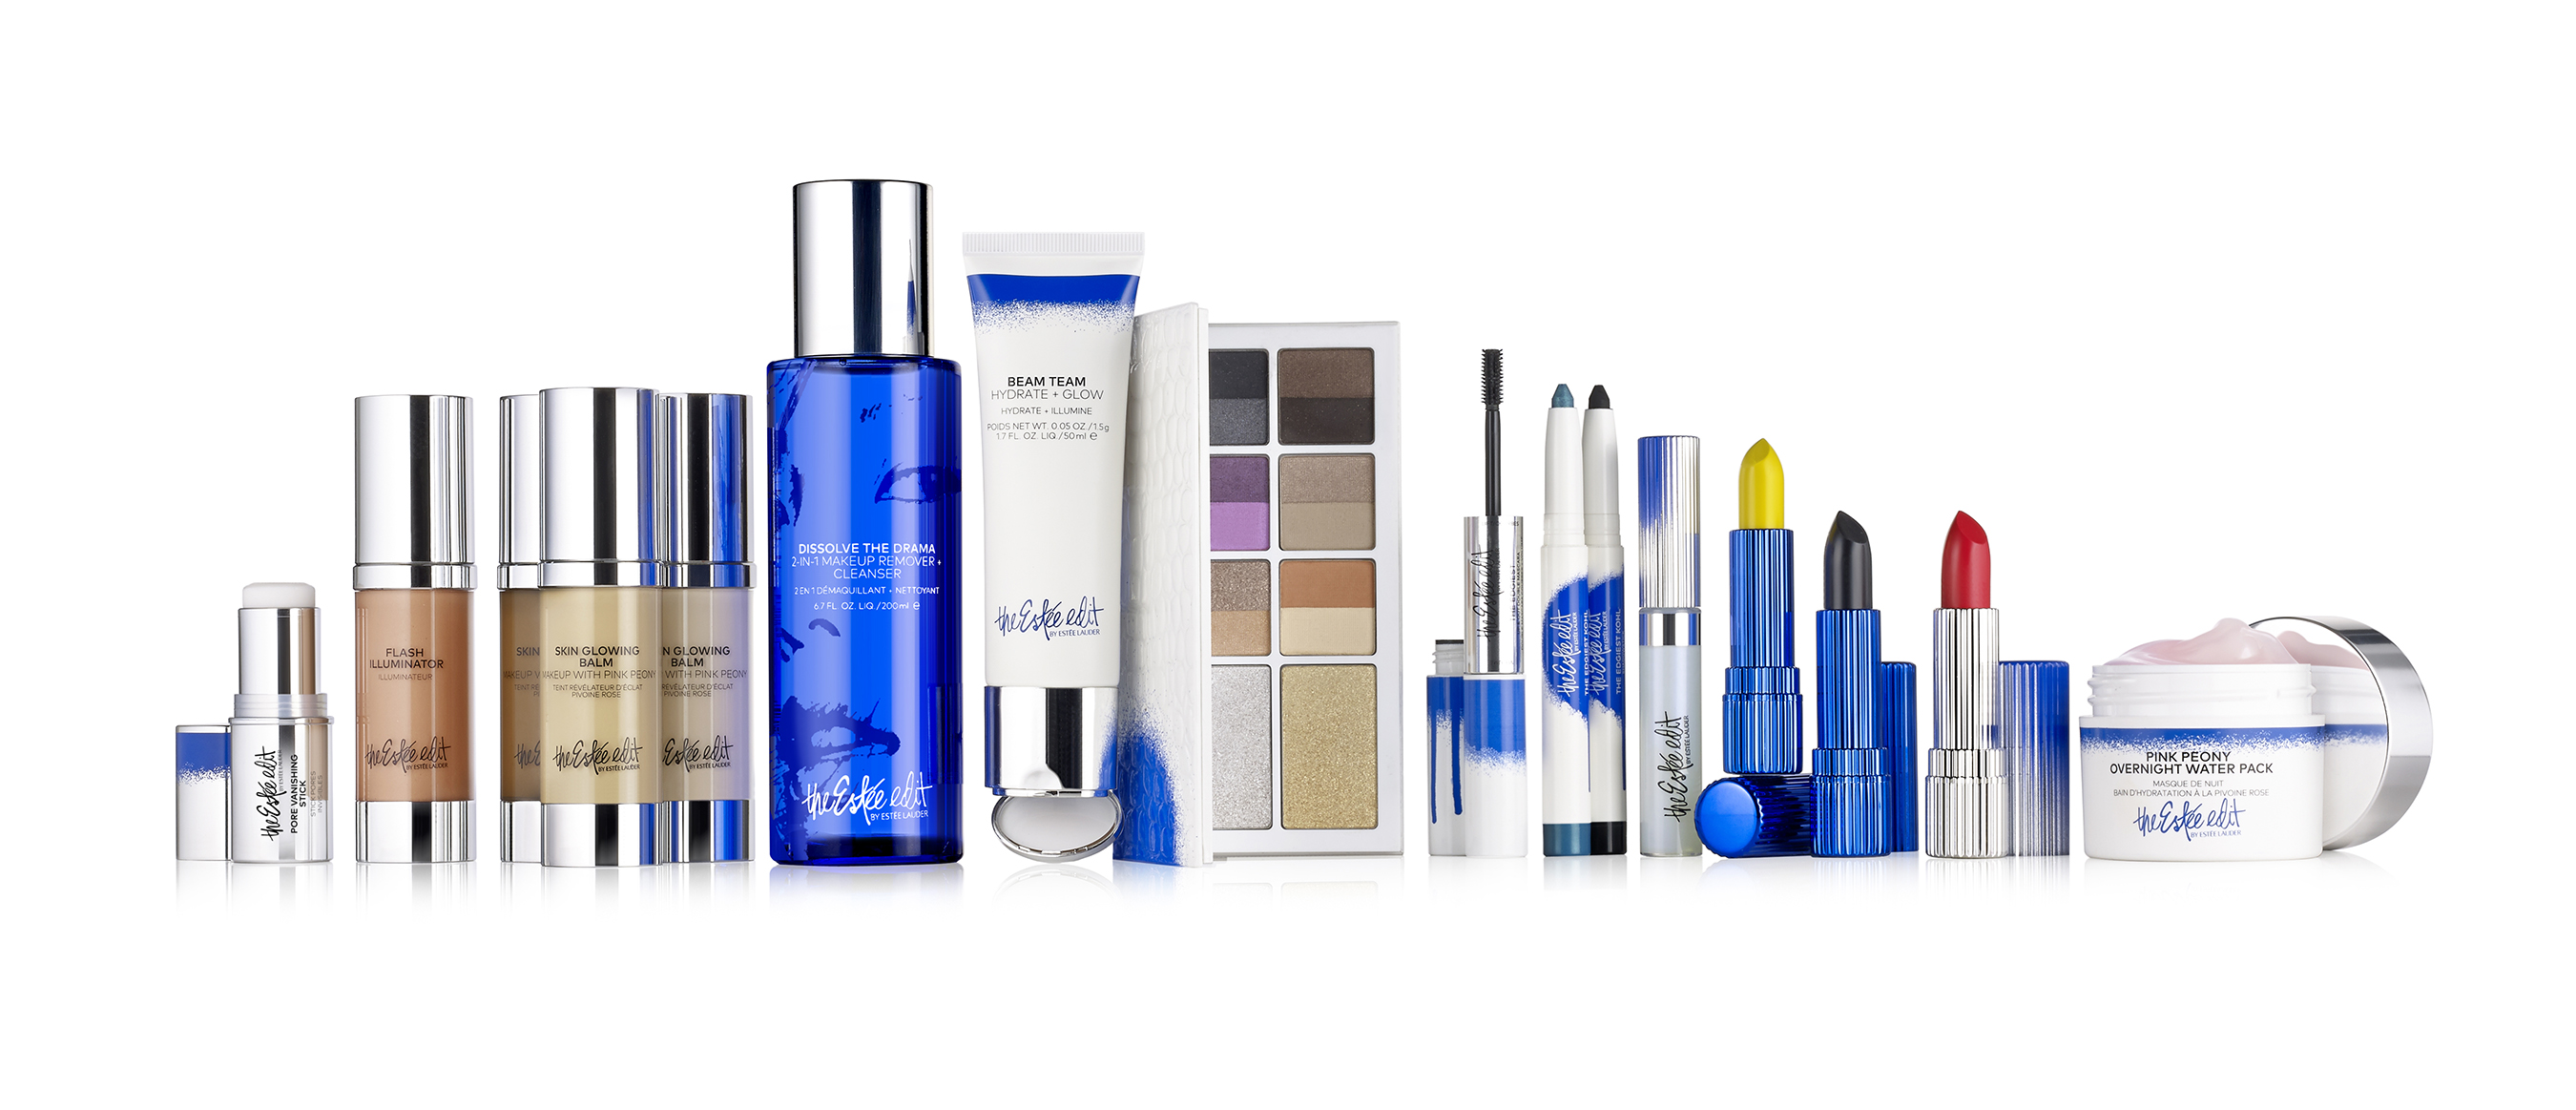 A sampling of the 82 Estée Edit products – 72 makeup, 10 skincare launching at Sephora US and Canada